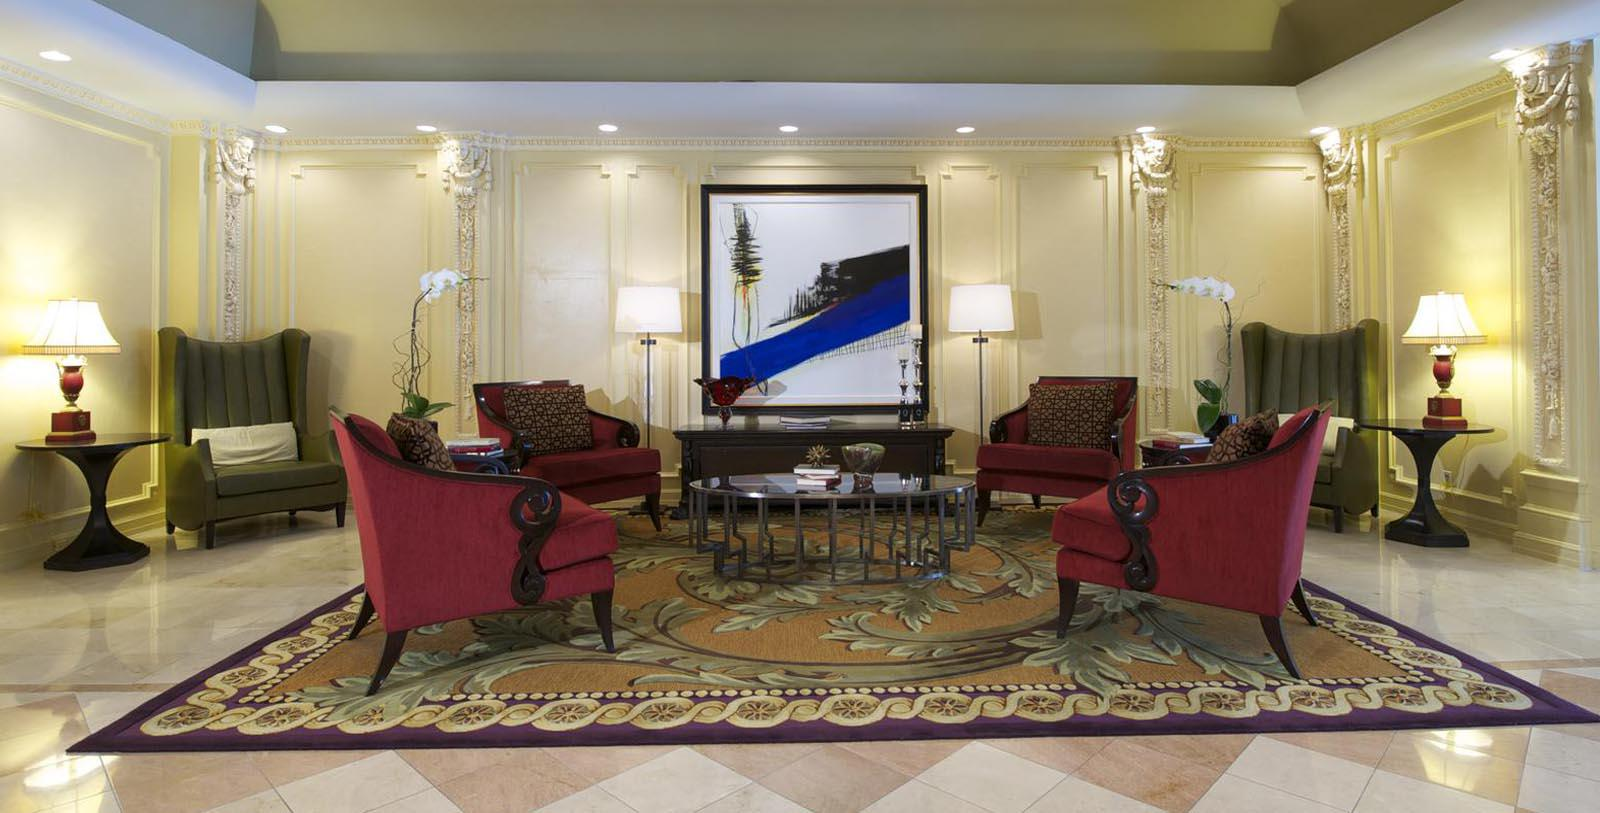 Image of Seating Area with Artwork The Churchill, 1906, Member of Historic Hotels of America, in Washington, DC, Explore